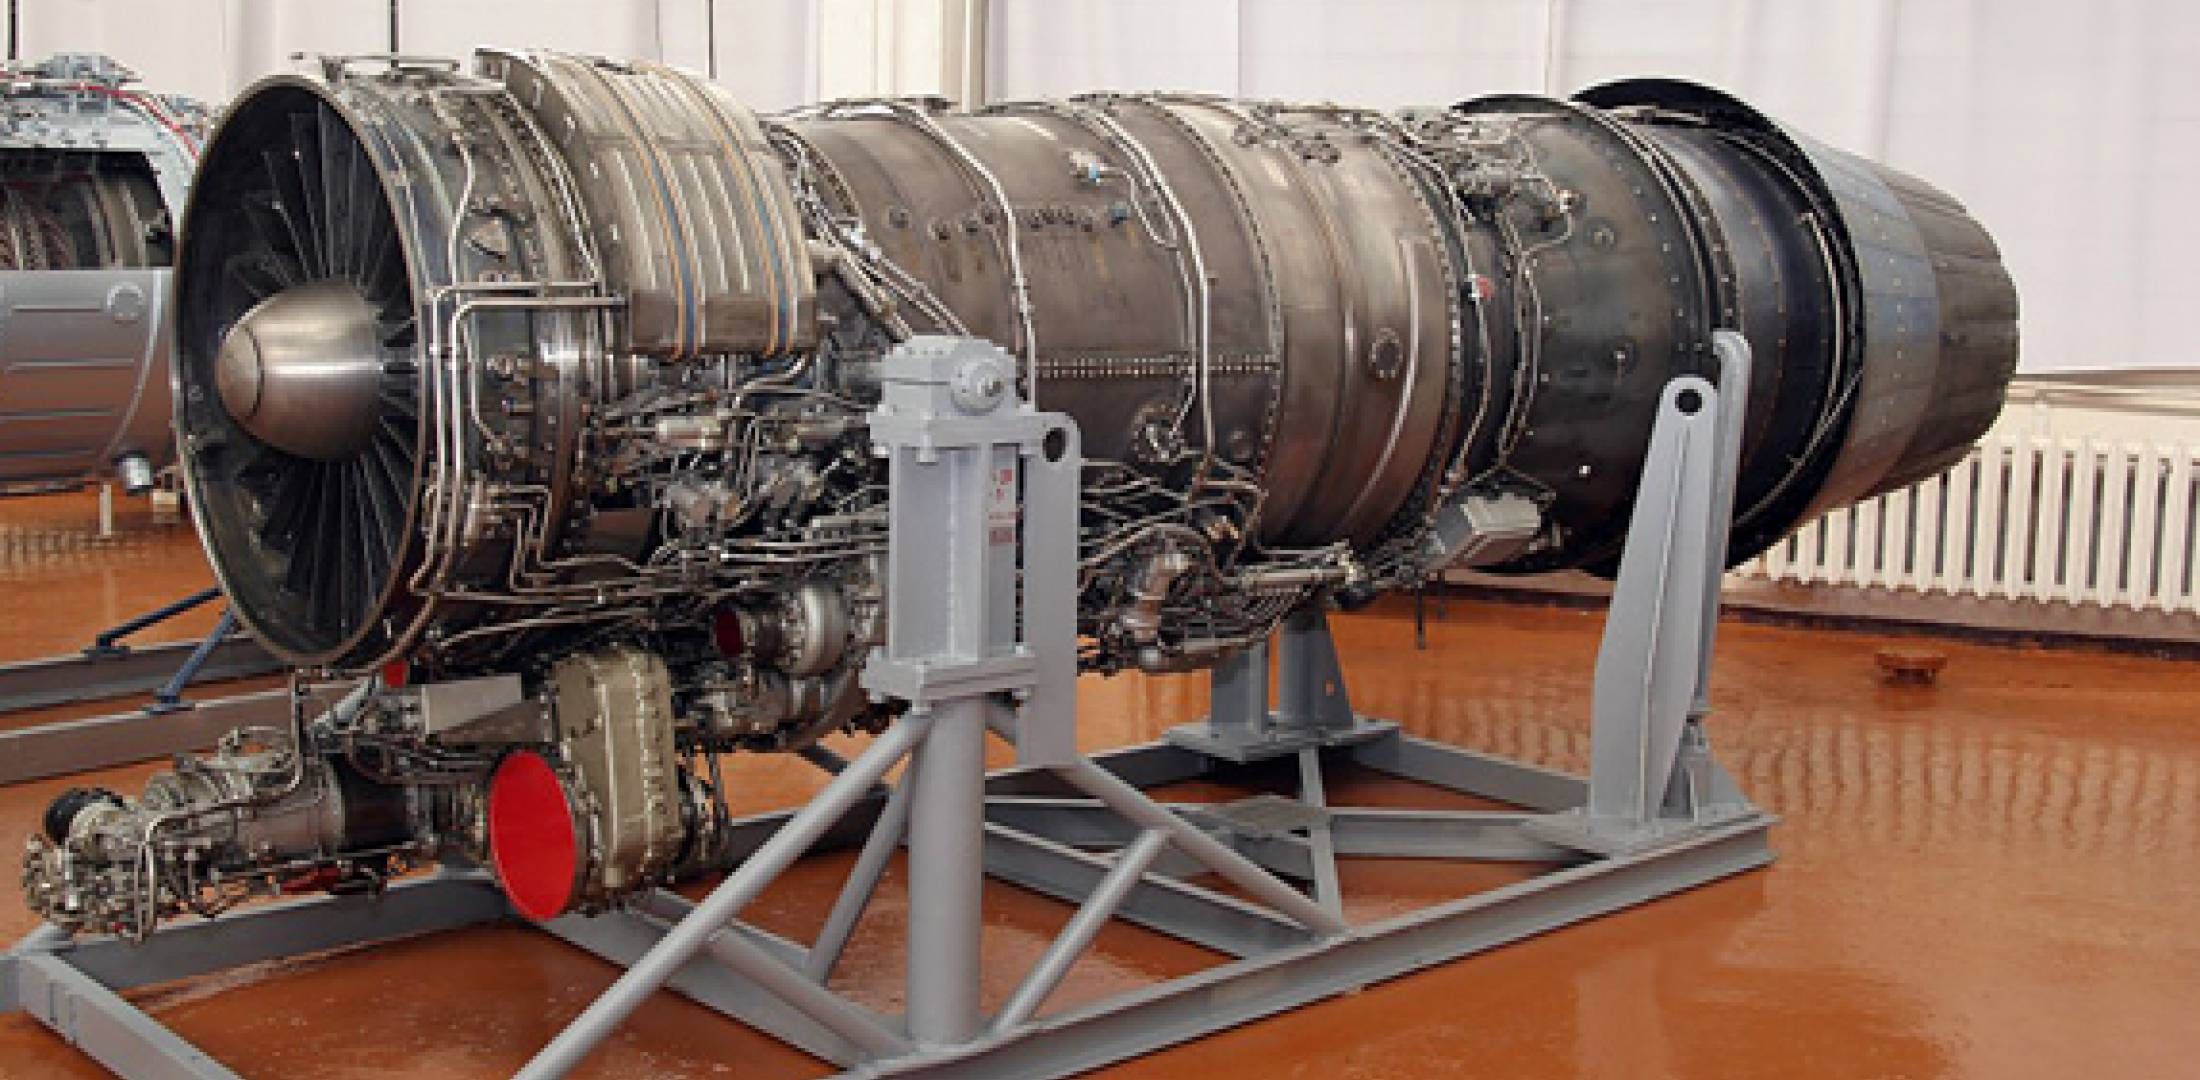 The AL-31FN is based on the standard Su-27 engine but is reconfigured to suit...